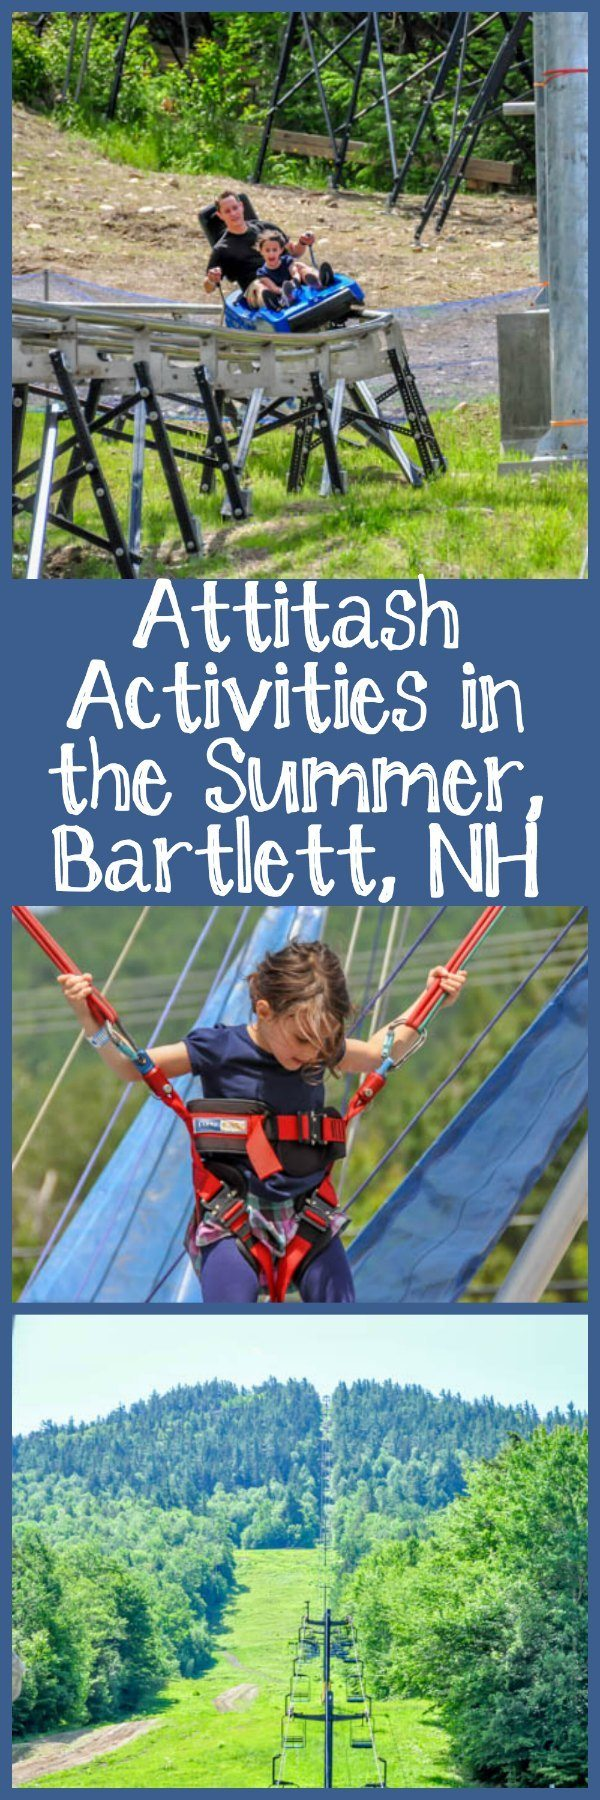 Attitash Activities in the Summer Including the Mountain Coaster and the Alpine Slide in Bartlett, NH